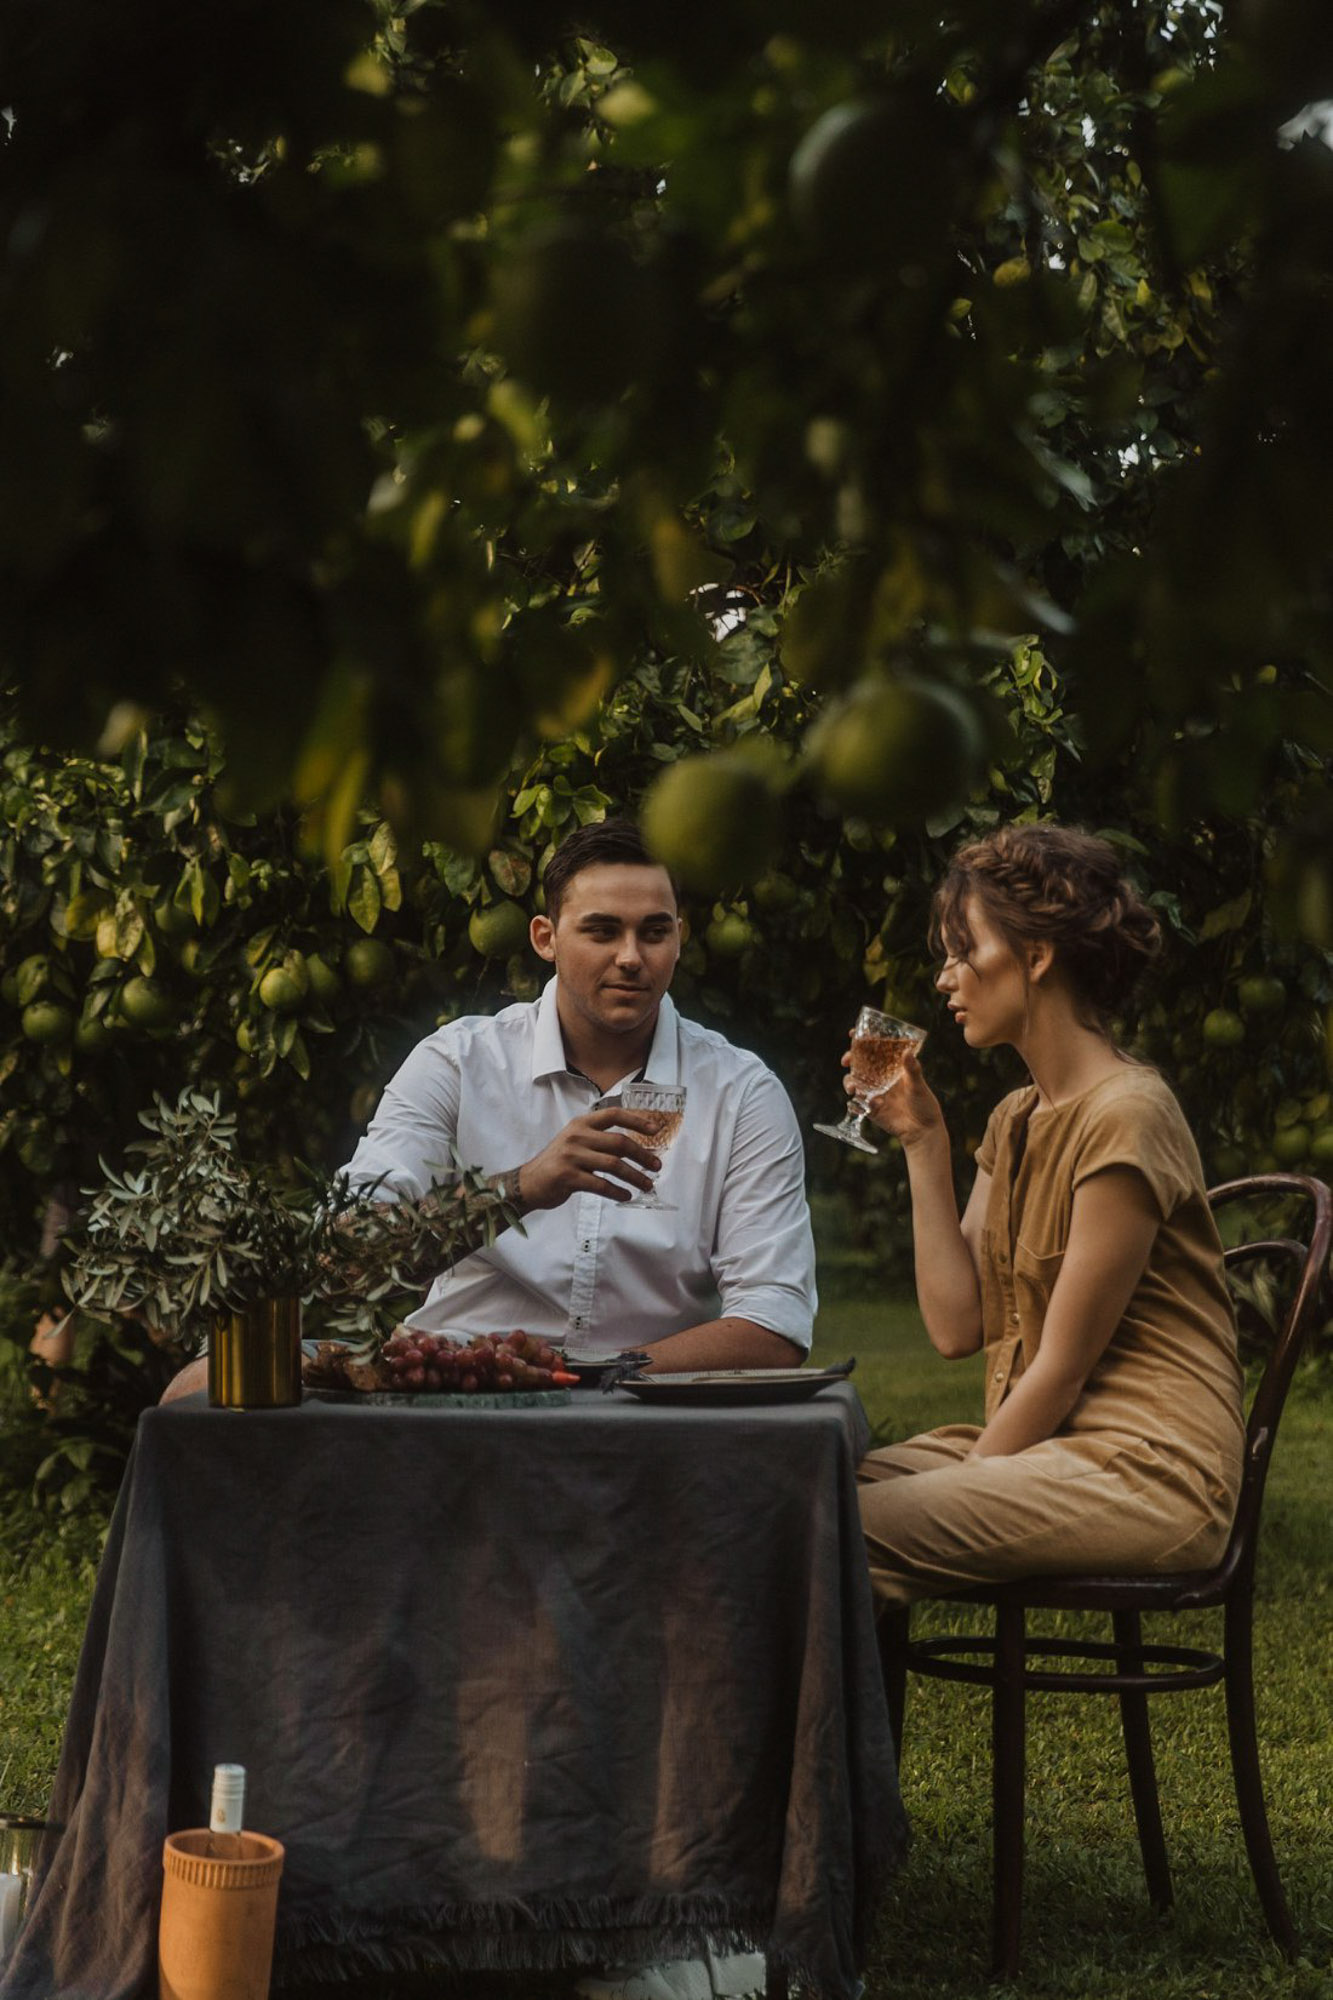 Styled Photshoot - Orchard Picnic Cairns  - Event Styling and Catering by The Collection Co-24.jpg